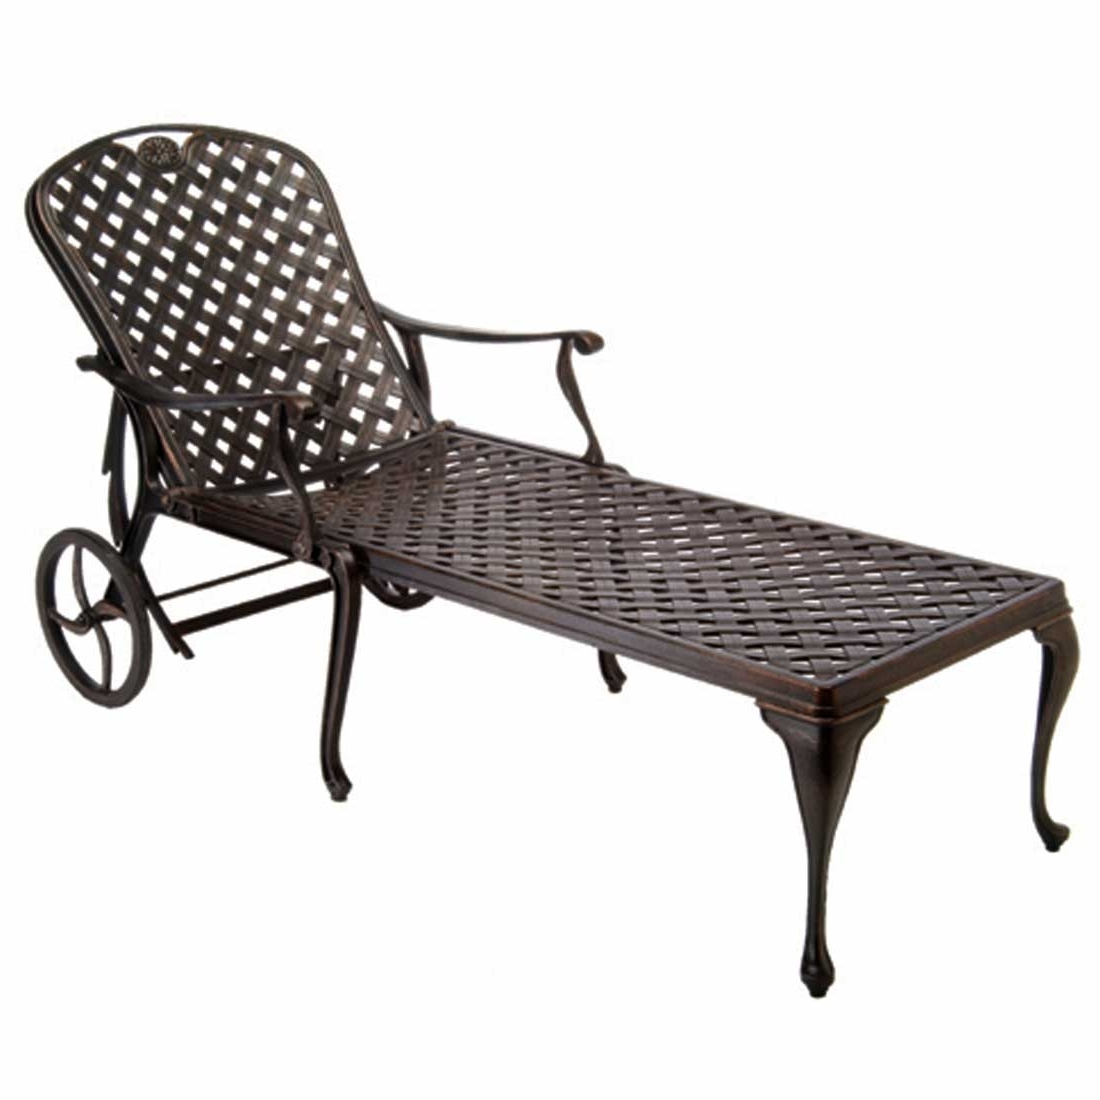 Atlanta Chaise Lounge Chairs Pertaining To Famous Provance Metal Chaise Lounge Chairs (View 3 of 15)